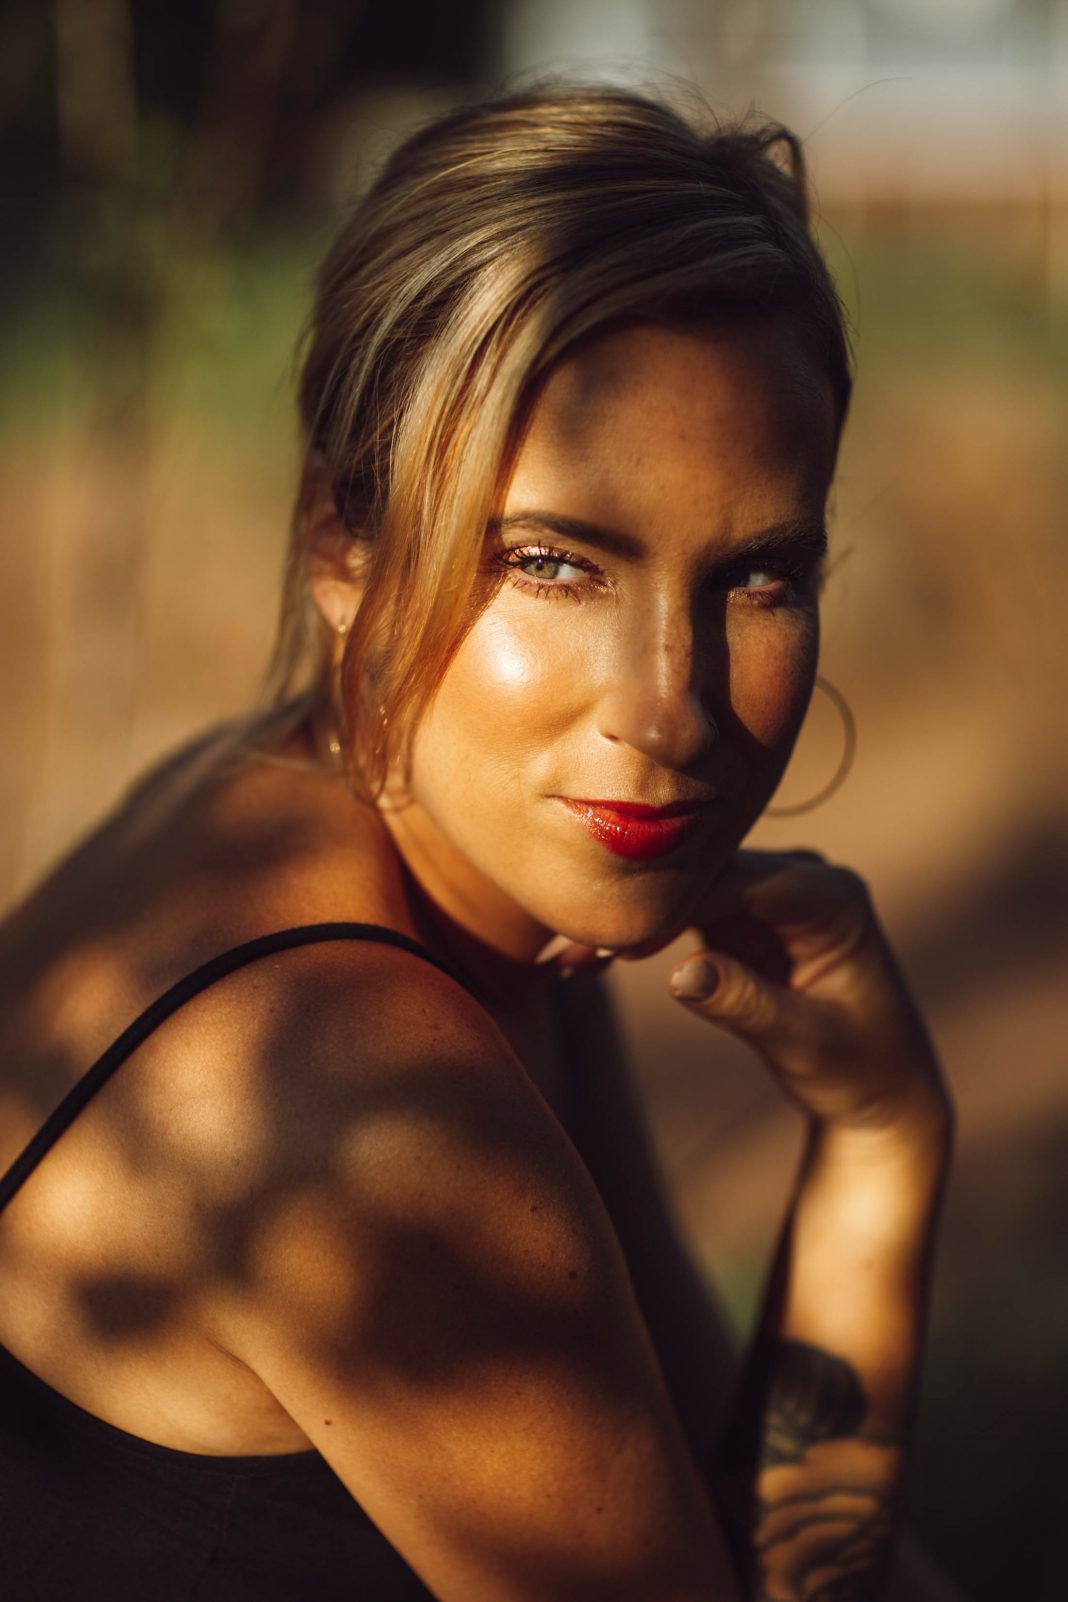 Our top makeup products from Nordstrom for glowing skin + how to get it in 5 easy steps. Foundation, bronzer, mascara, lip gloss & powder = sun-kissed glow.